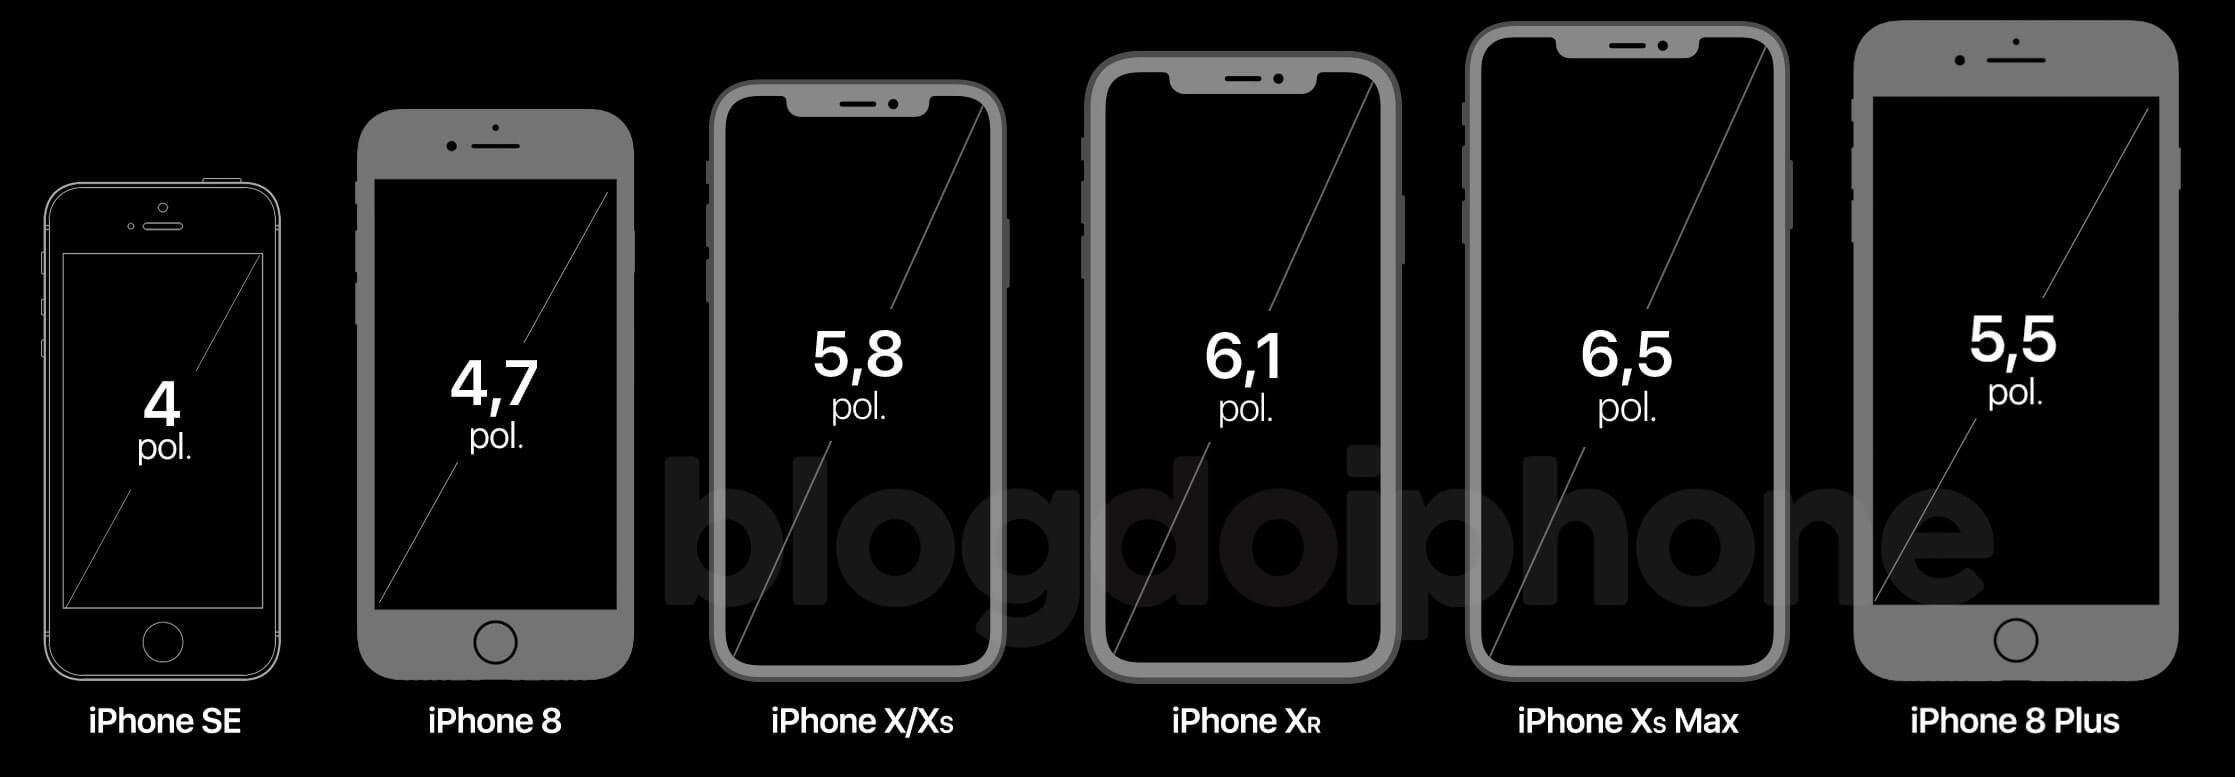 iphone 8 vs iphone 8 plus comparacion